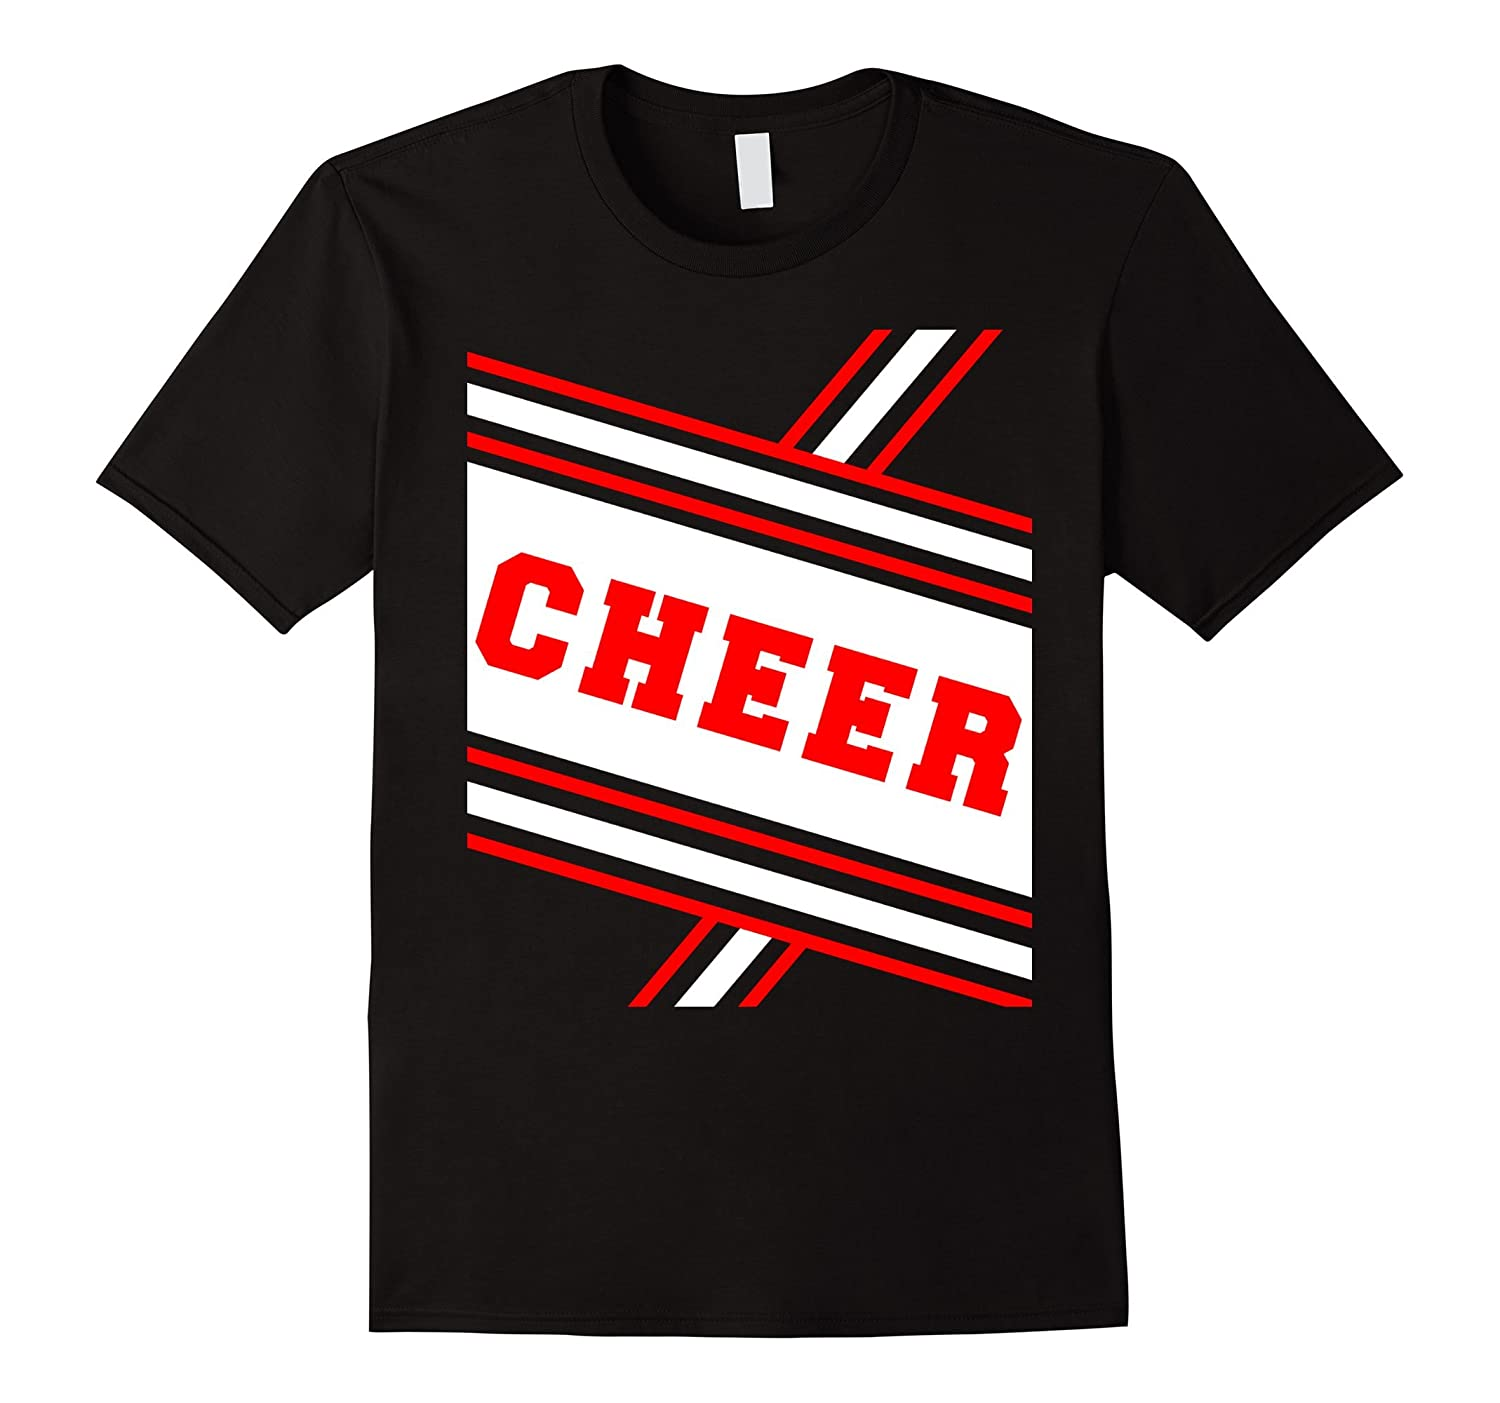 c9d719c5f8b Imported Machine wash cold with like colors, dry low heat. This Cheerleader  Costume T shirt features cheerleader uniform look.